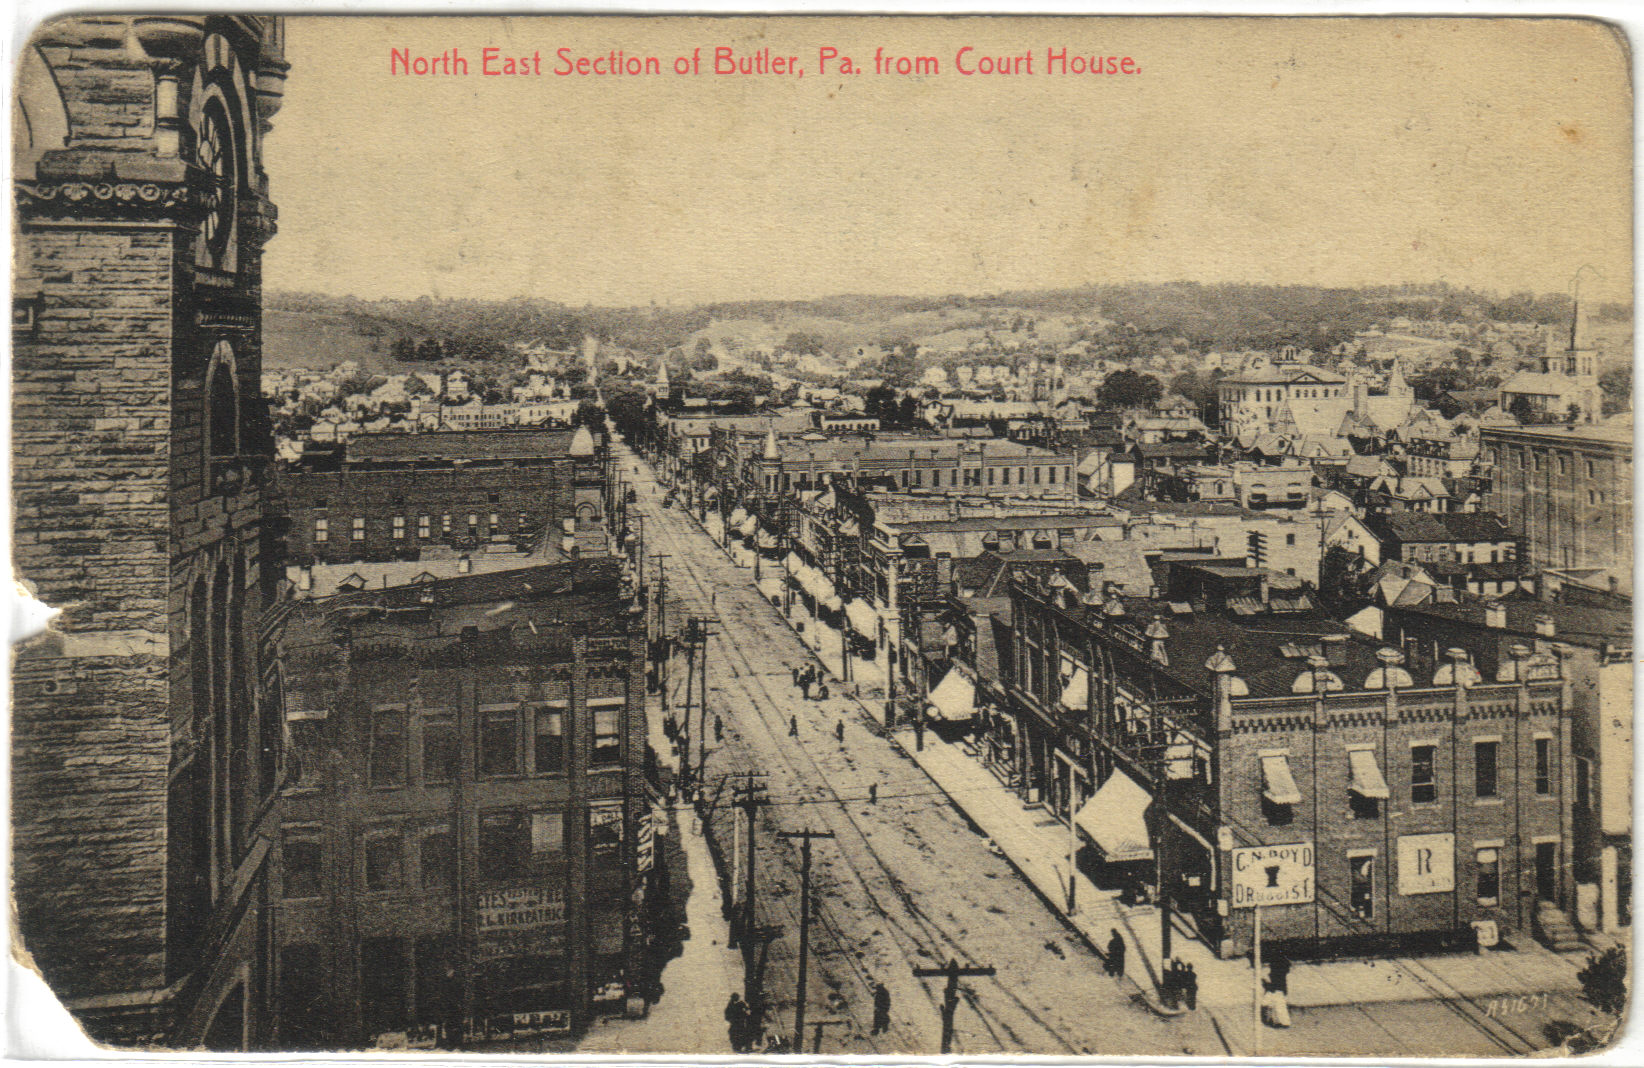 NorthEastSection-front.jpg